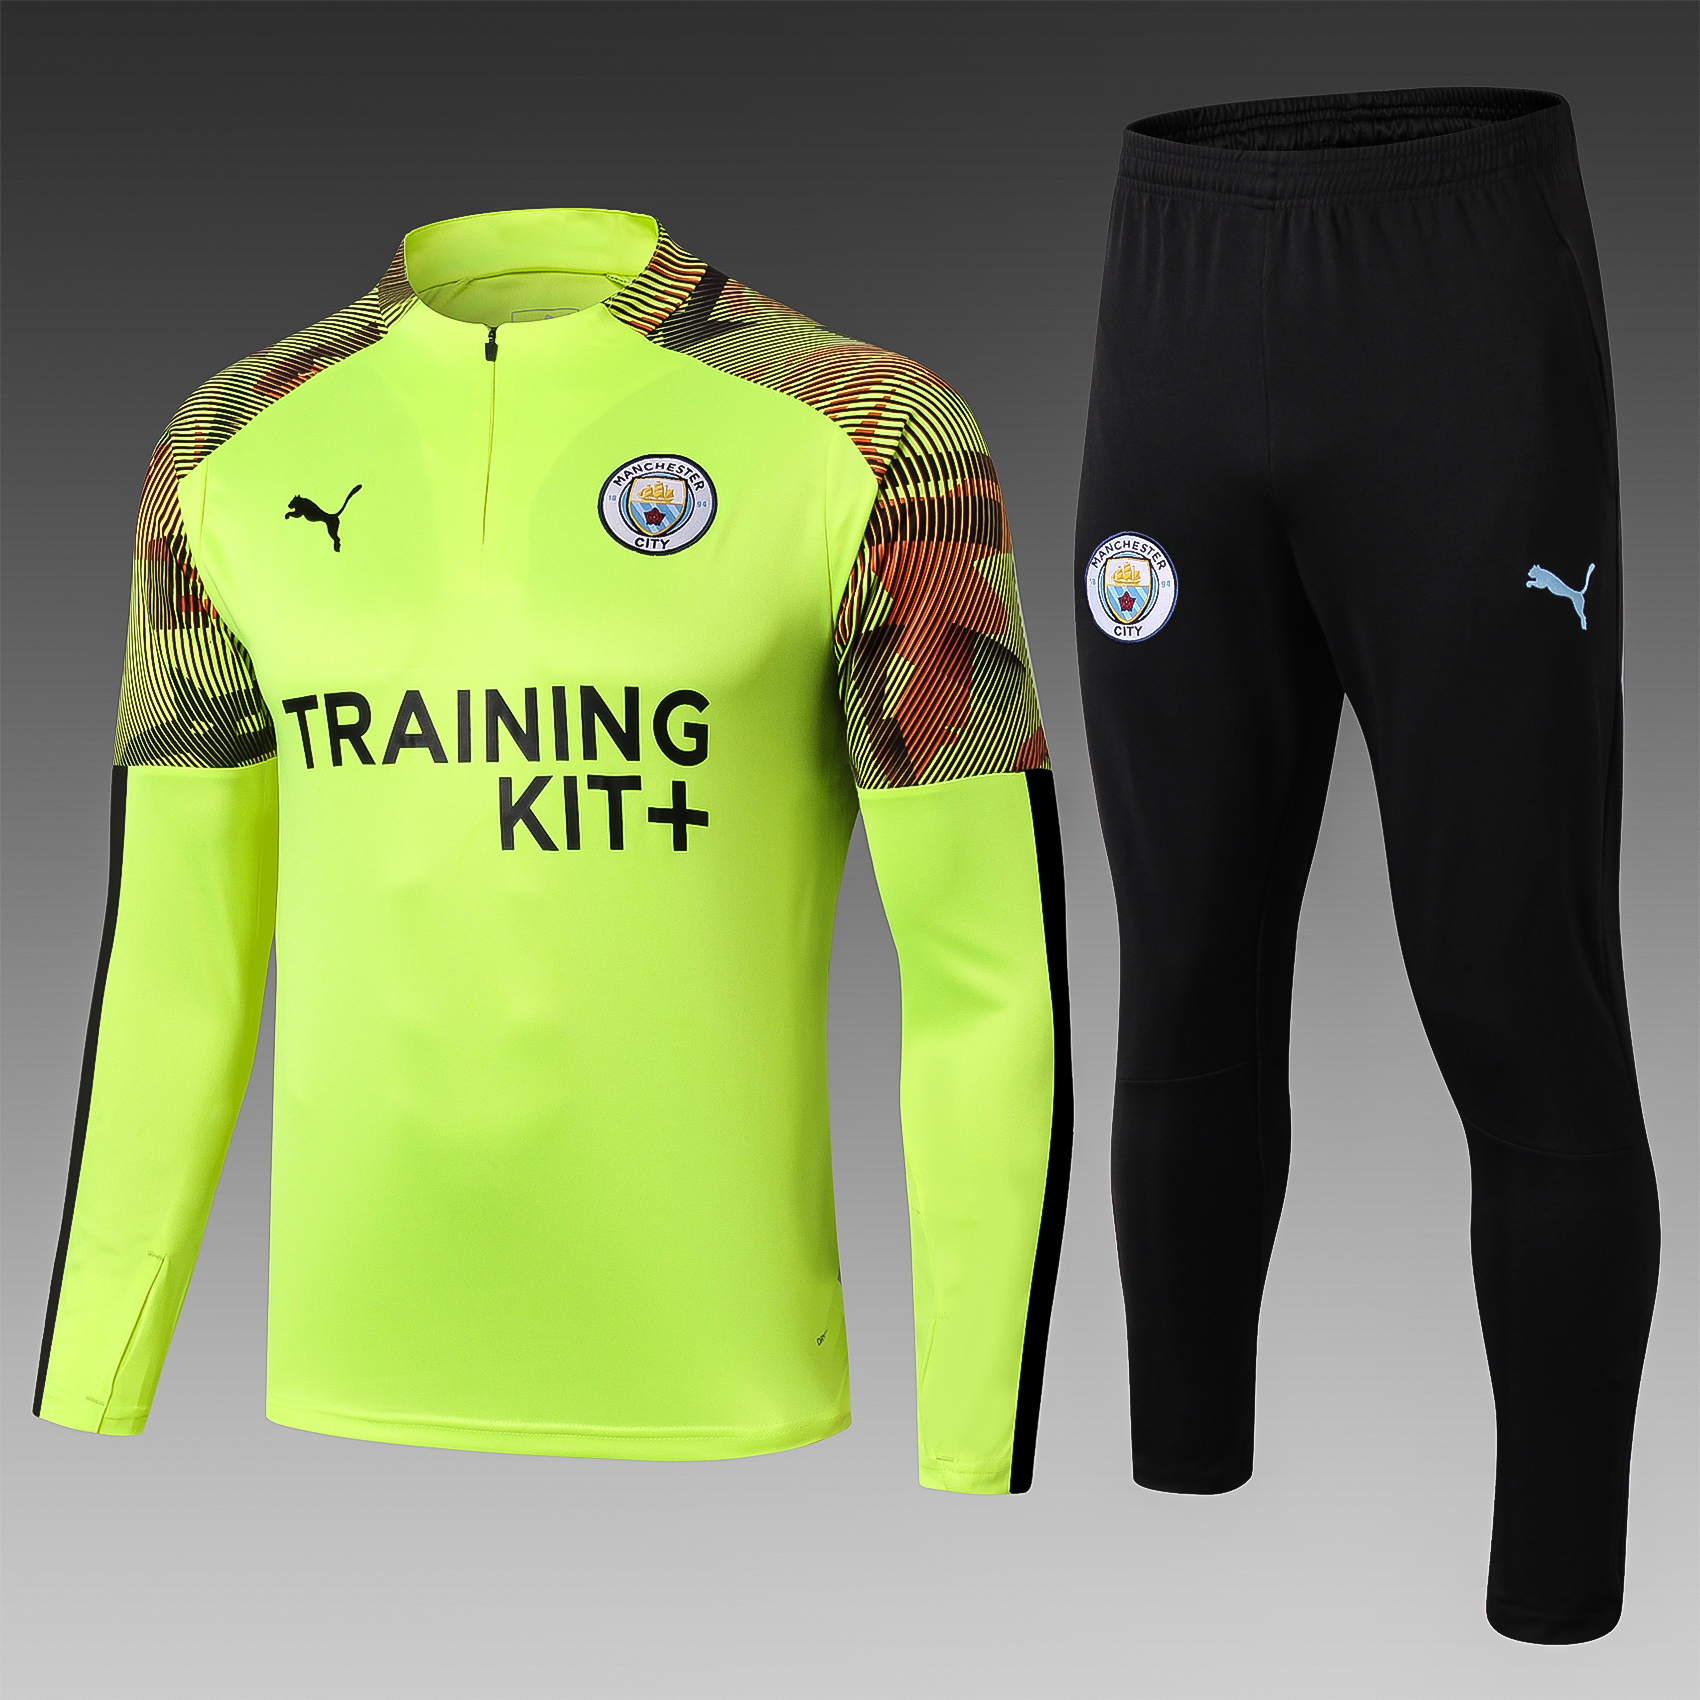 Training Manchester City saison 2019-2020